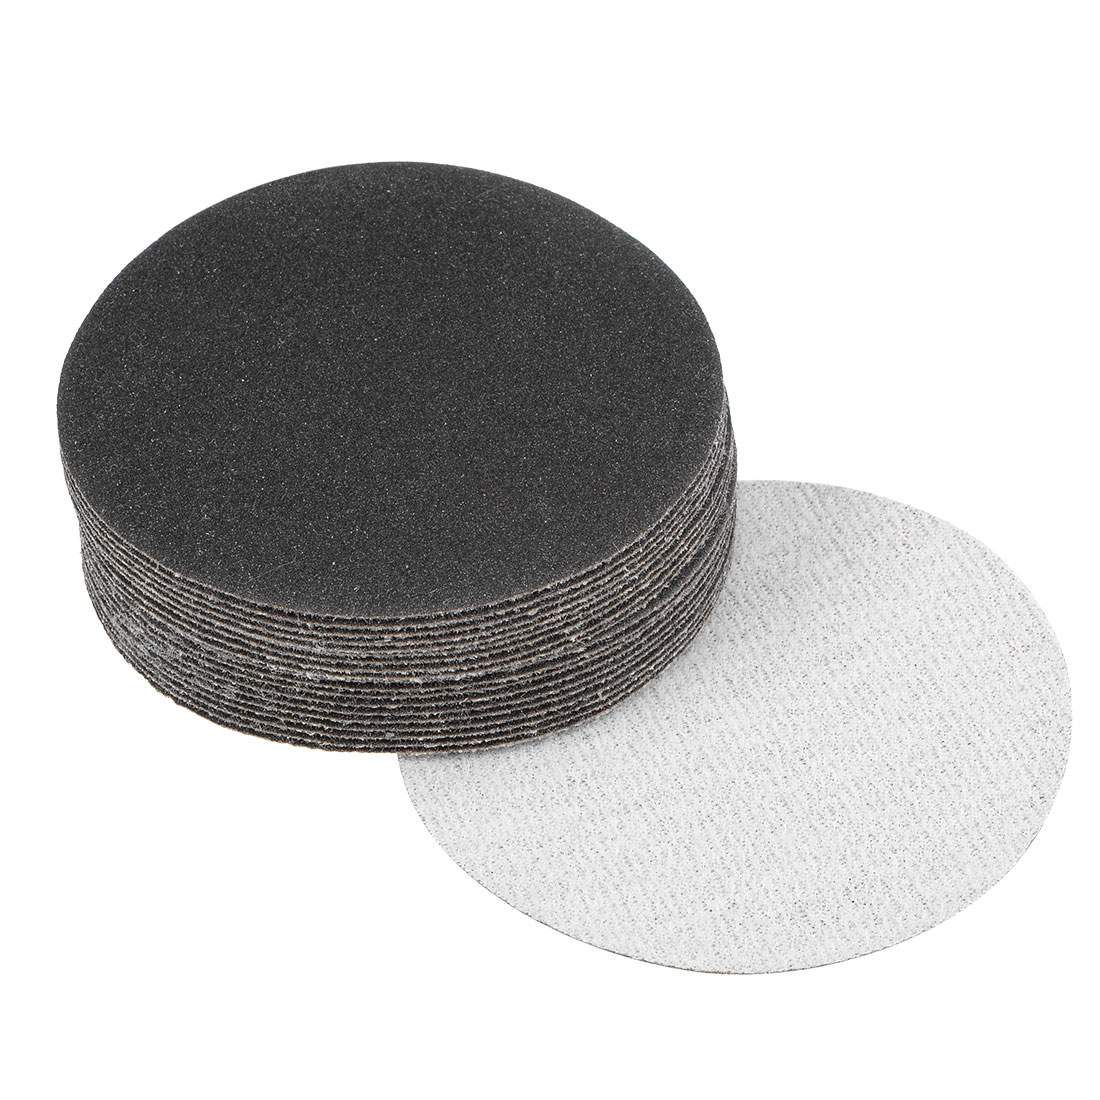 3 inch Wet Dry Discs 180 Grit Hook and Loop Sanding Disc Silicon Carbide 20pcs